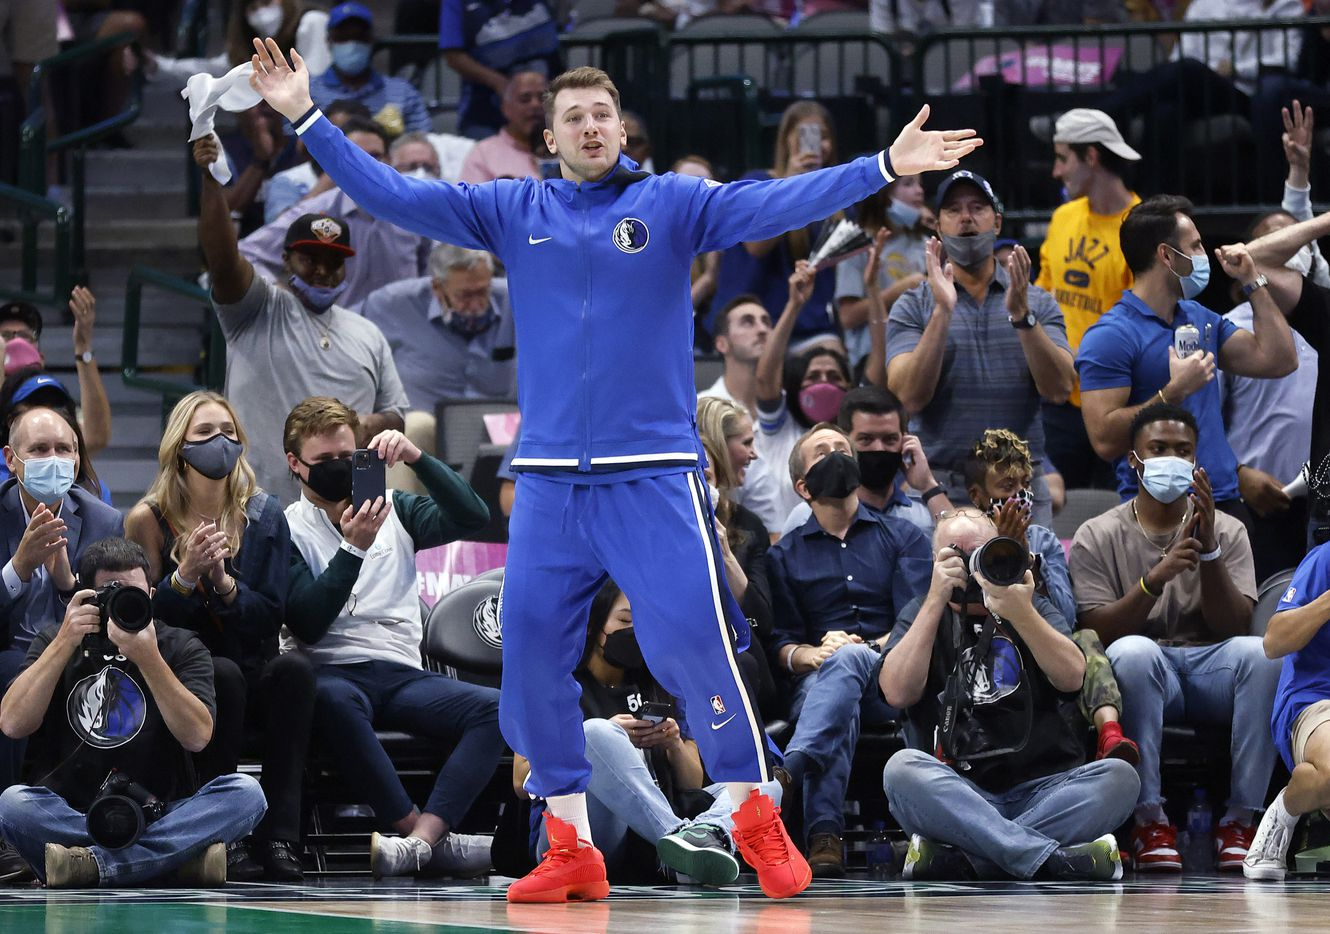 Dallas Mavericks guard Luka Doncic jumps out of his seat and onto the floor, celebrating Boban Marjanovic's second half play against the Utah Jazz at the American Airlines Center in Dallas, Wednesday, October 6, 2021. The Mavericks defeated the Jazz, 111-101. (Tom Fox/The Dallas Morning News)